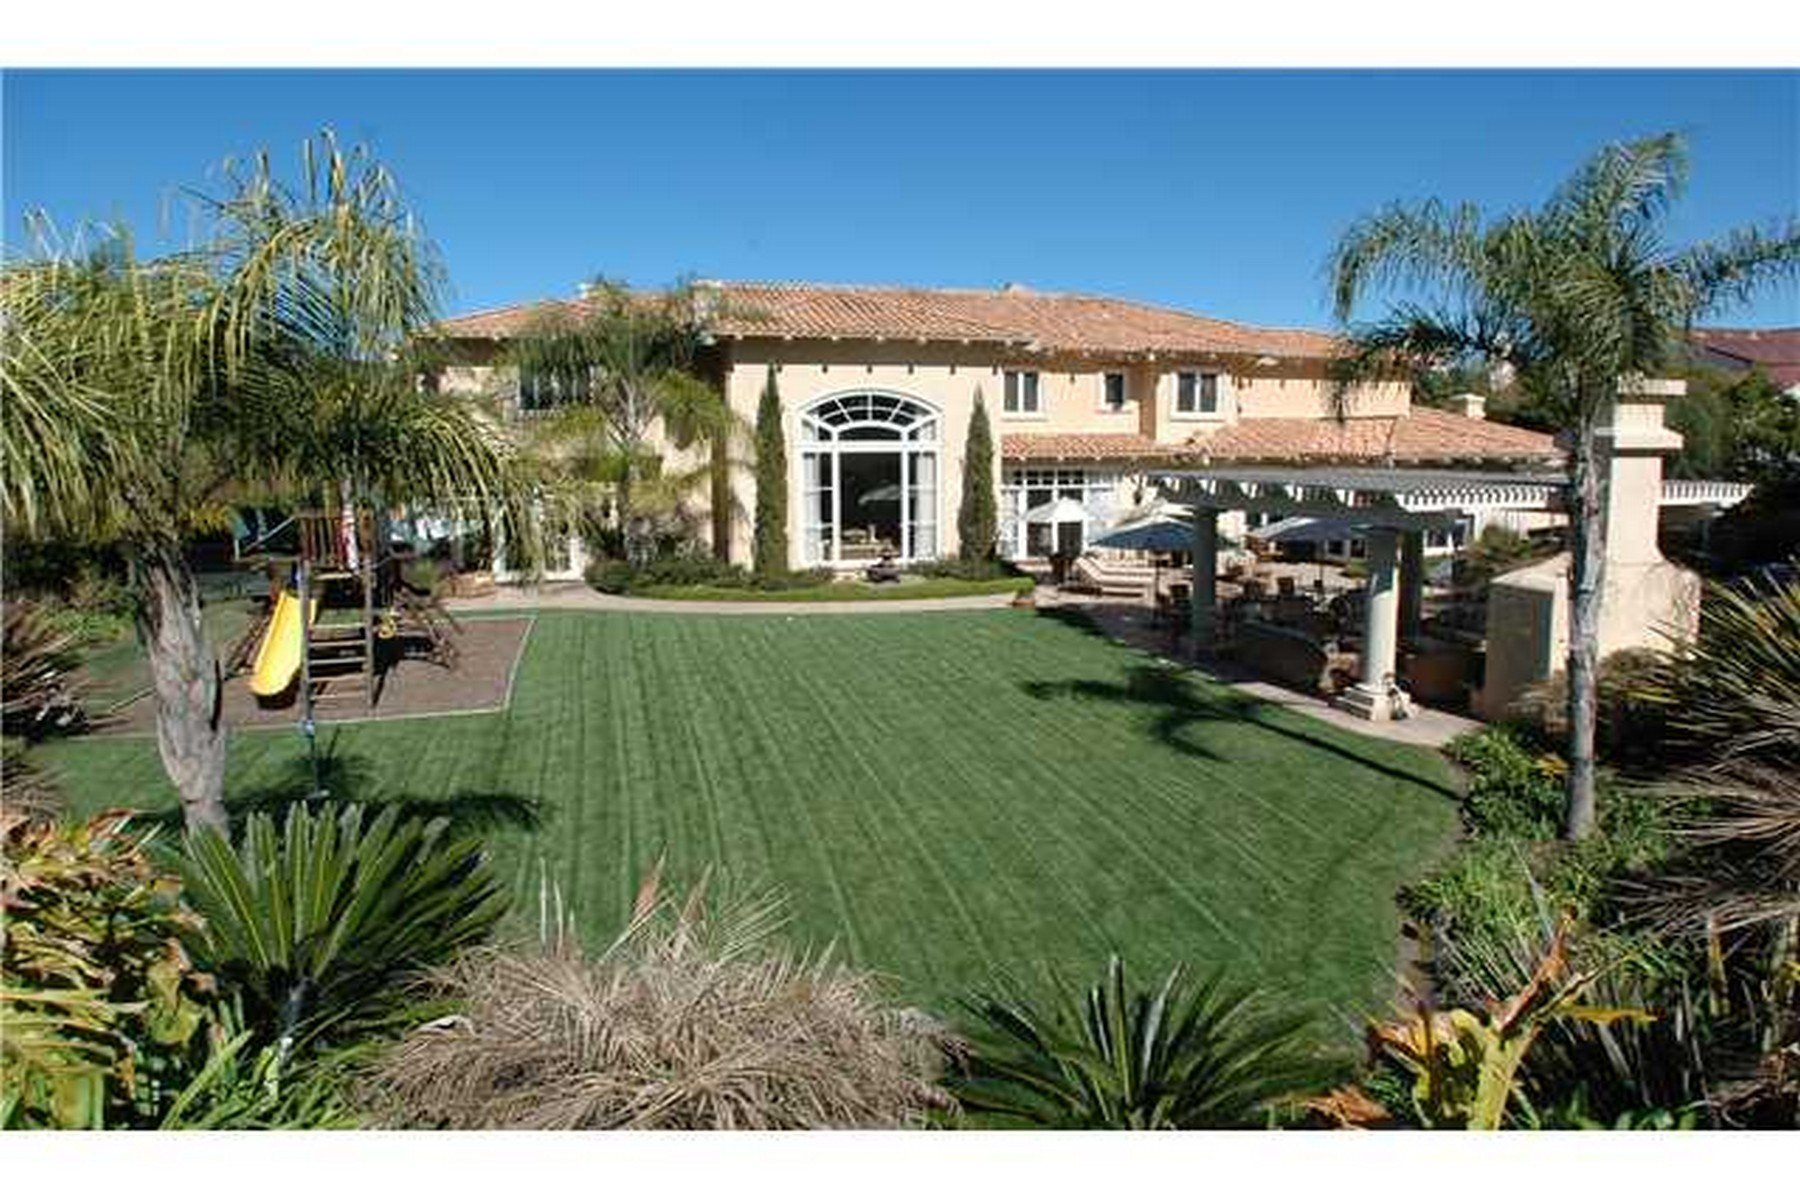 Single Family Home for Rent at 6369 Clubhouse Drive 6369 Clubhouse Drive - Rental Rancho Santa Fe, 92067 United States